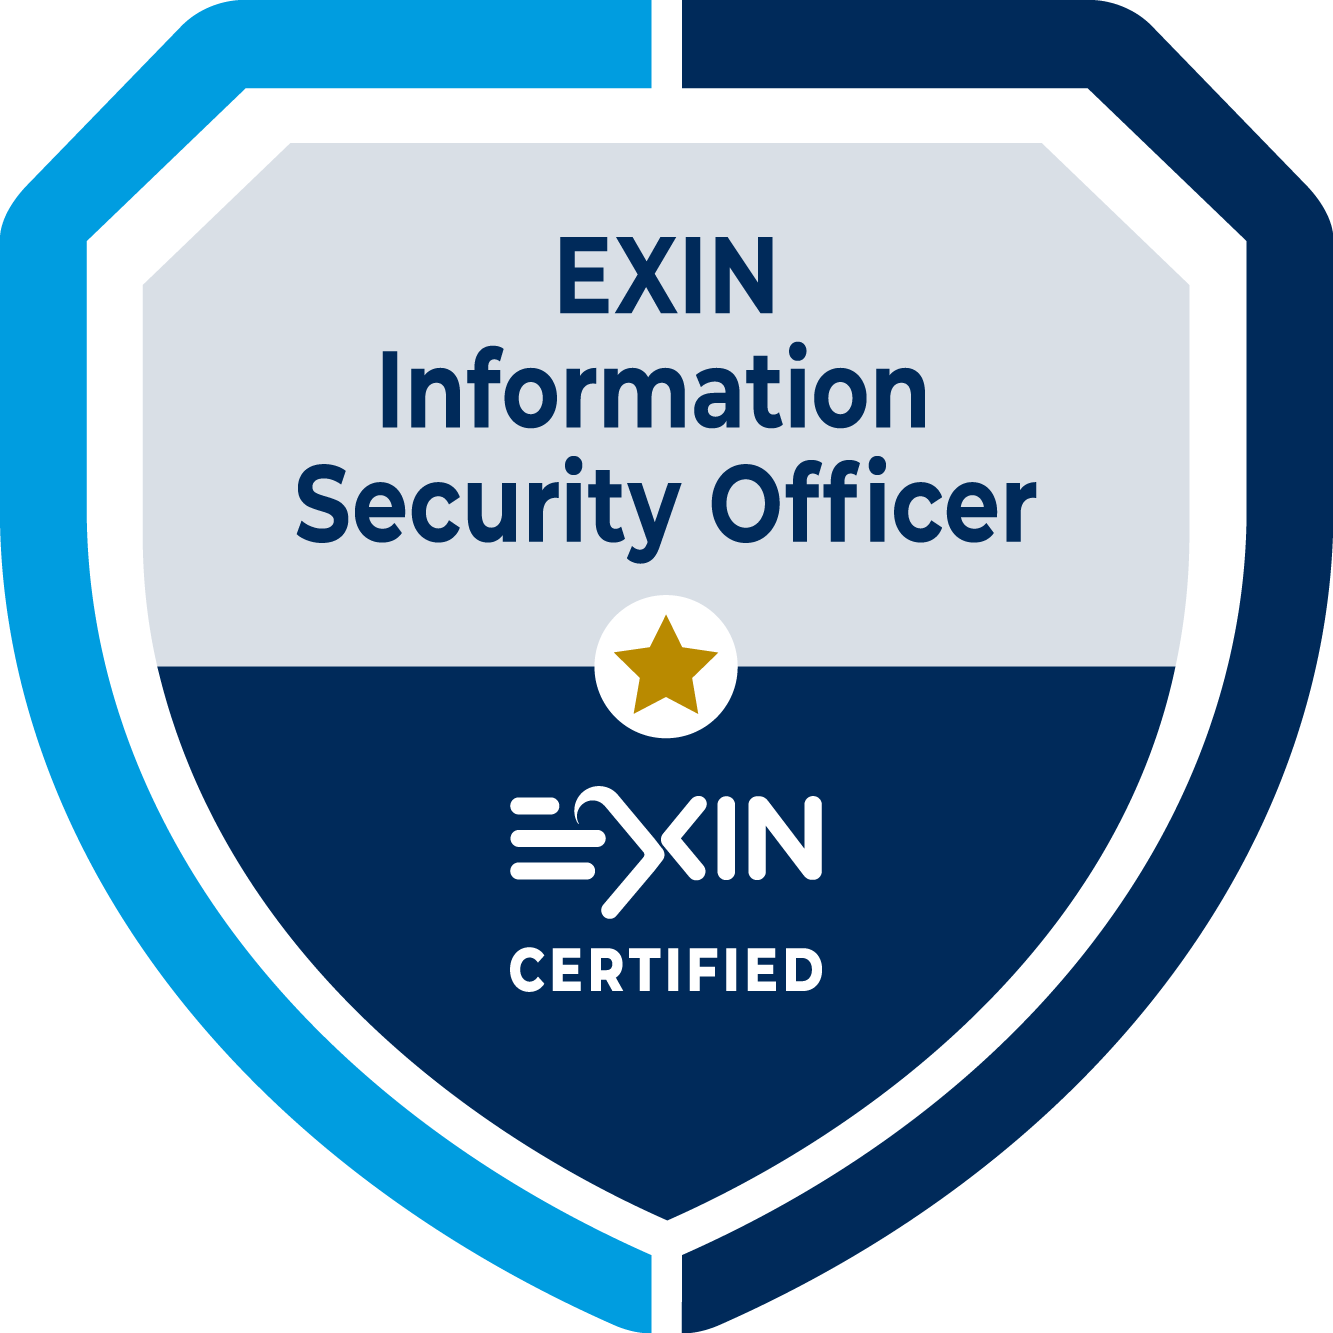 EXIN Certified Information Security Officer